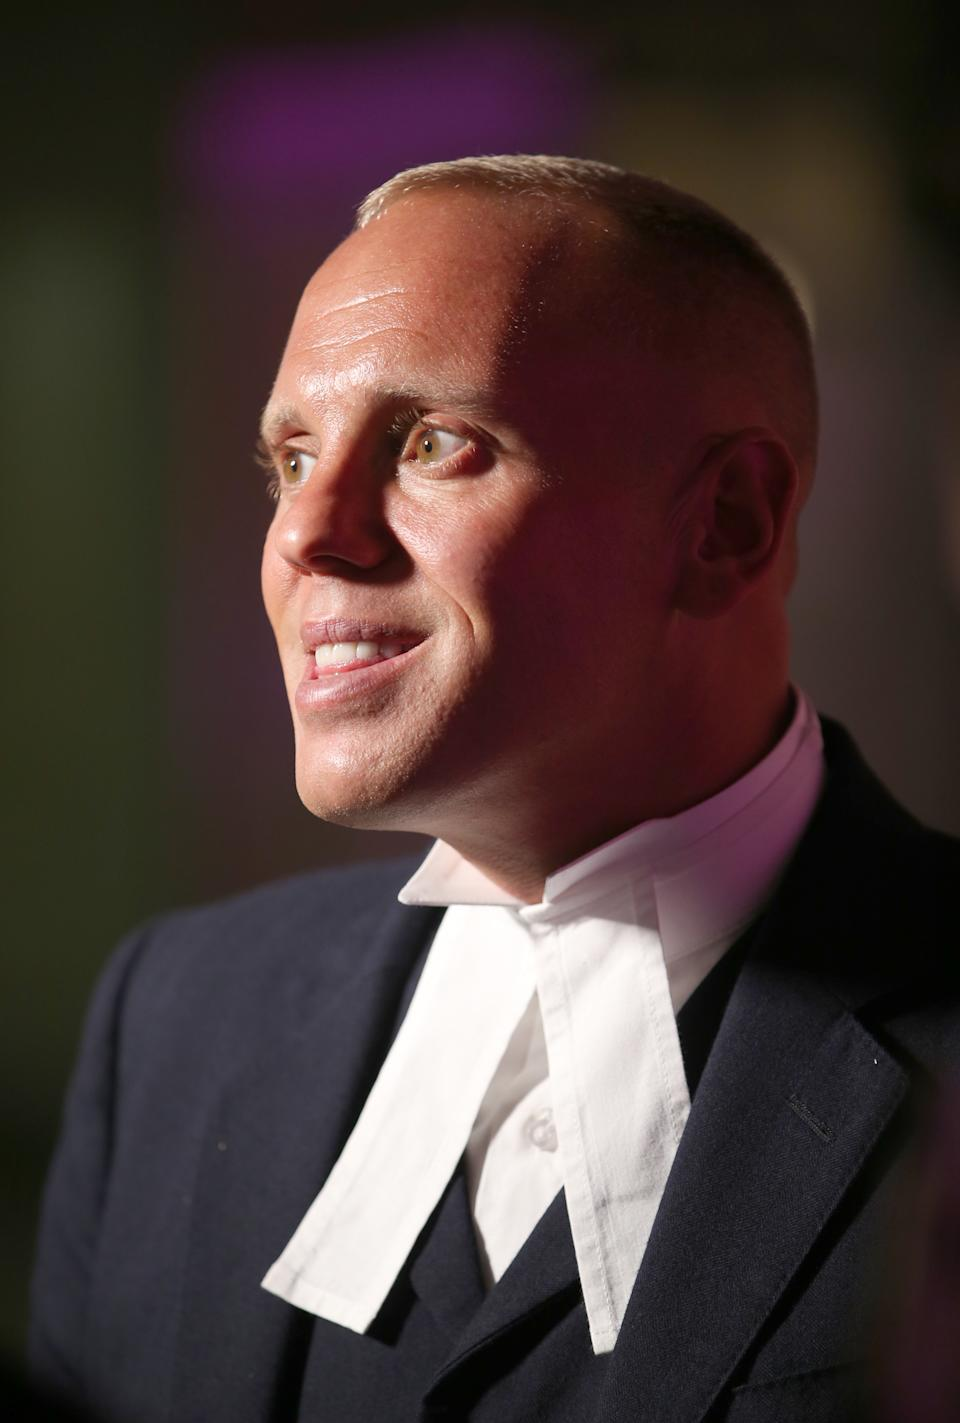 Criminal barrister Judge Robert Rinder at the 2017 Edinburgh International Television Festival at the Edinburgh International Conference Centre. (Photo by Jane Barlow/PA Images via Getty Images)